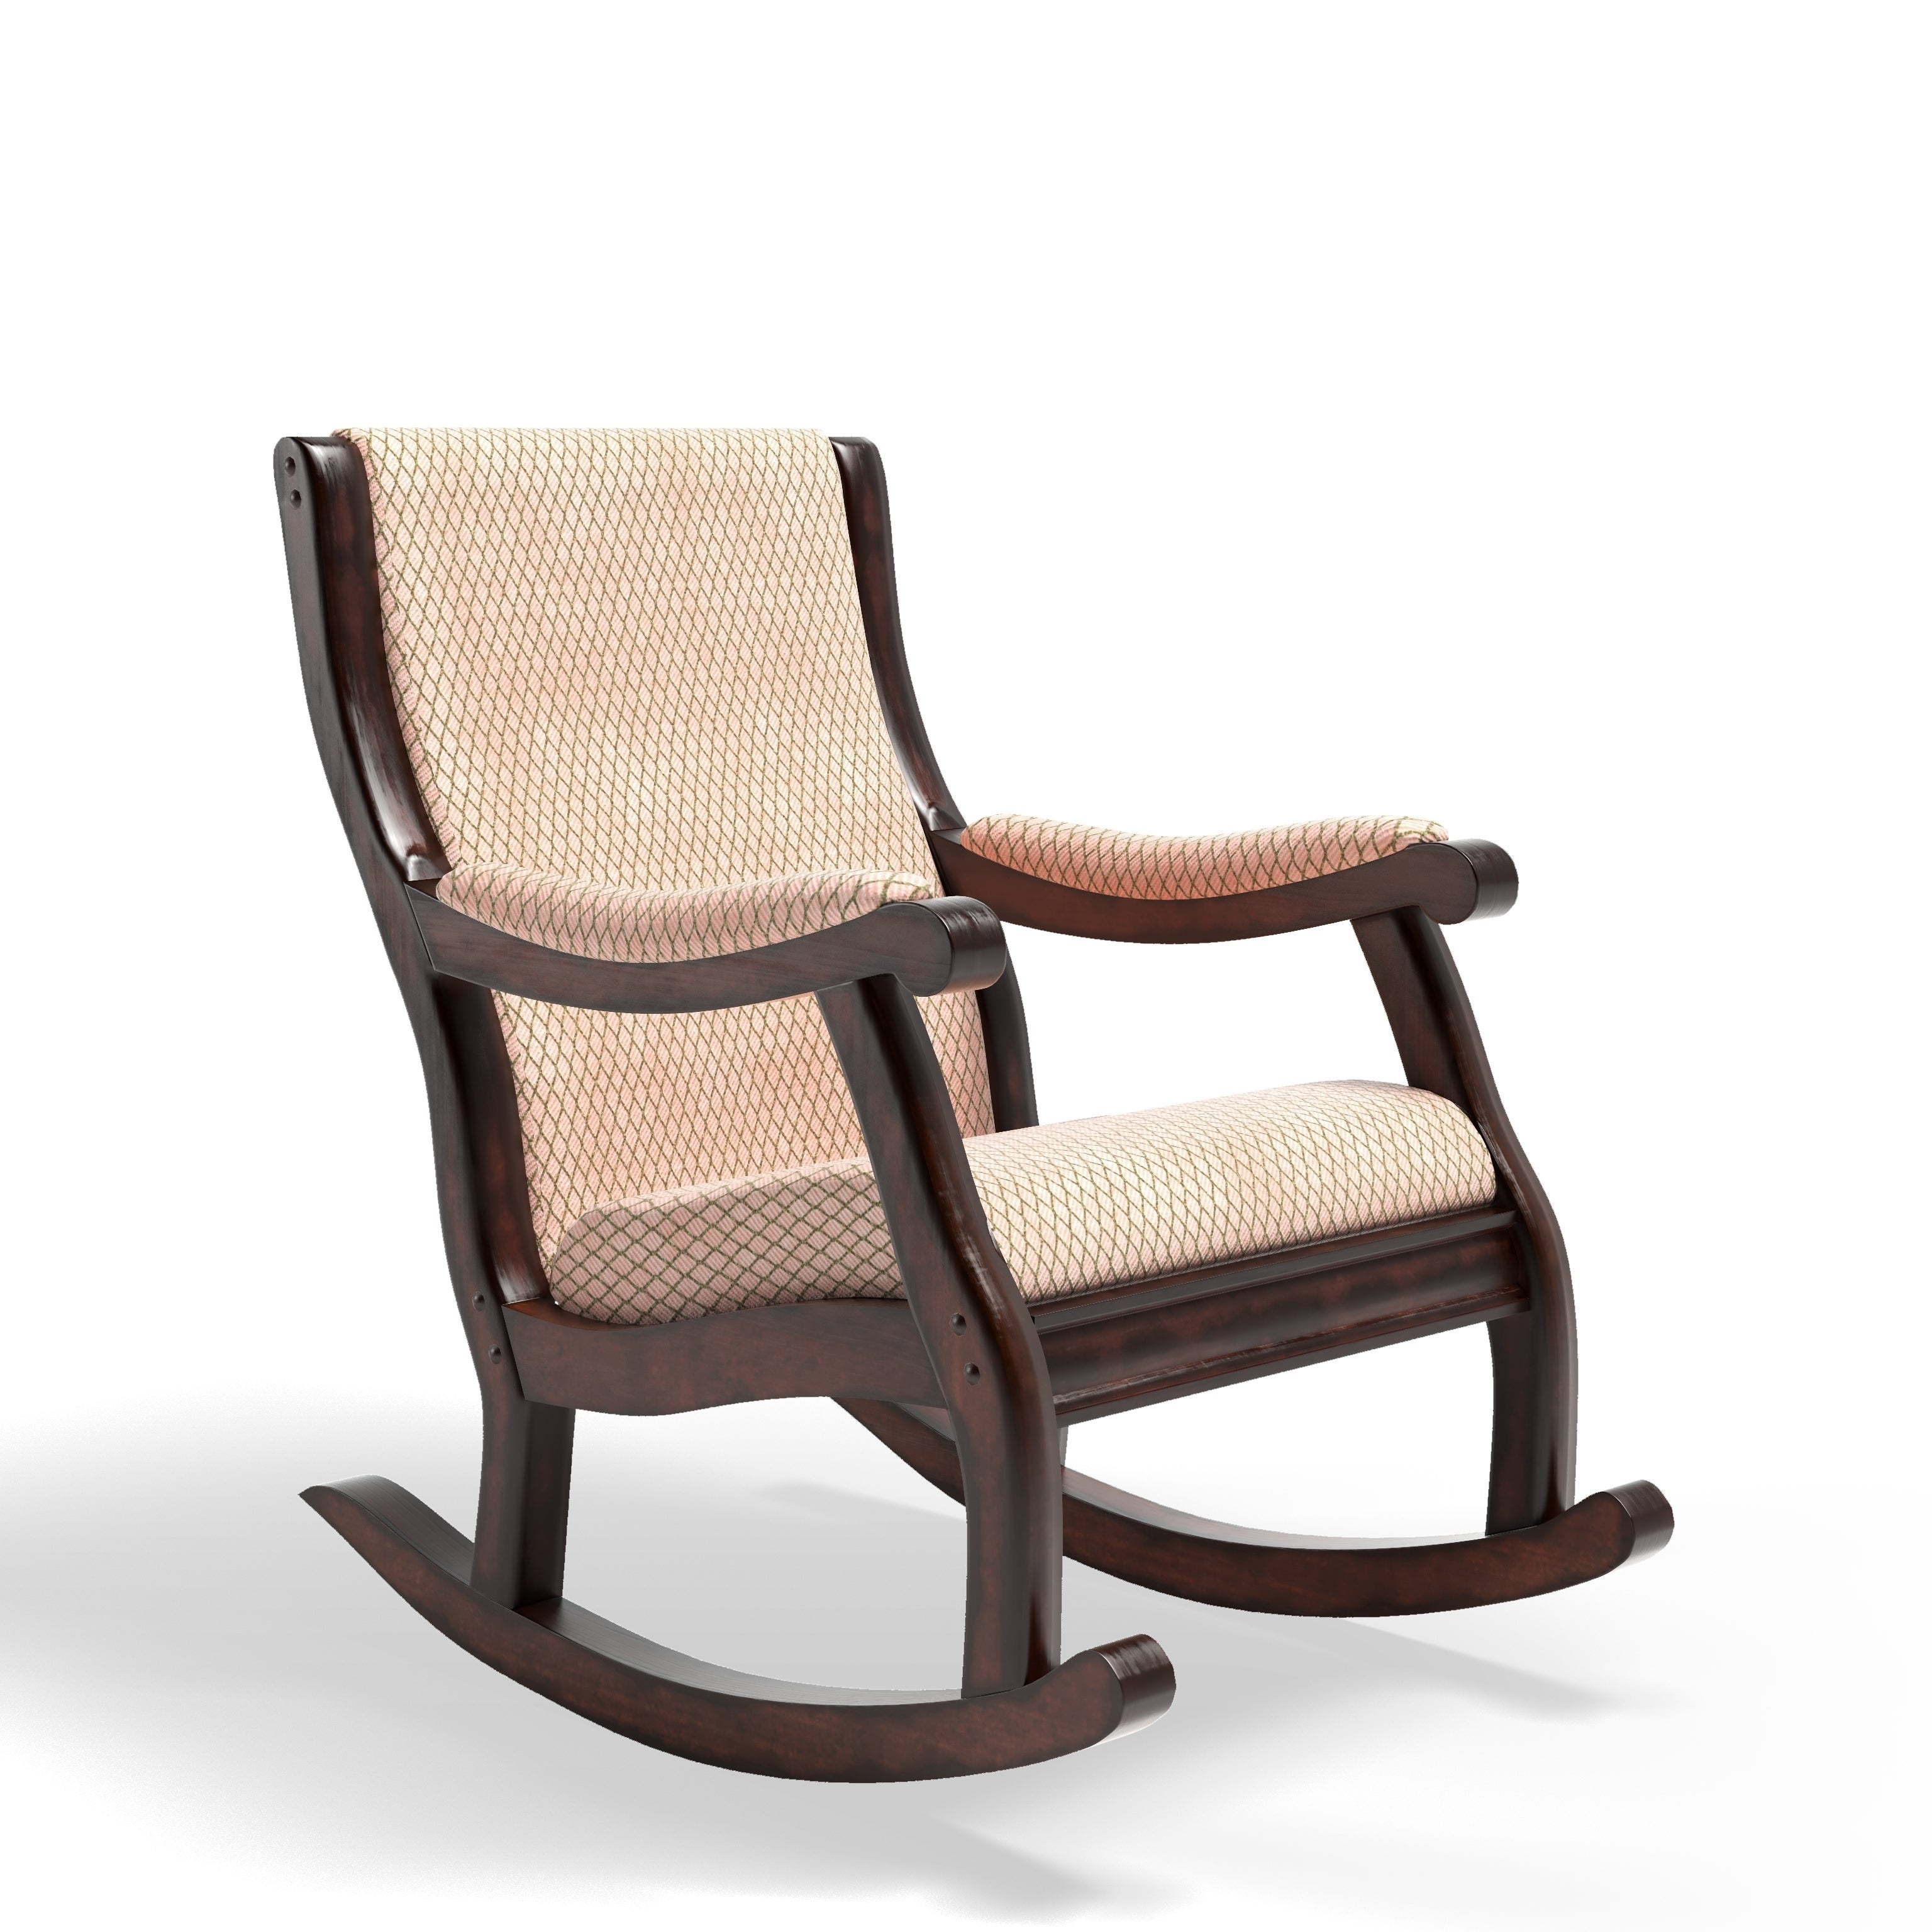 Antique Transitional Warm Oak Rocking Chairfoa Throughout Antique Transitional Warm Oak Rocking Chairs (View 2 of 20)